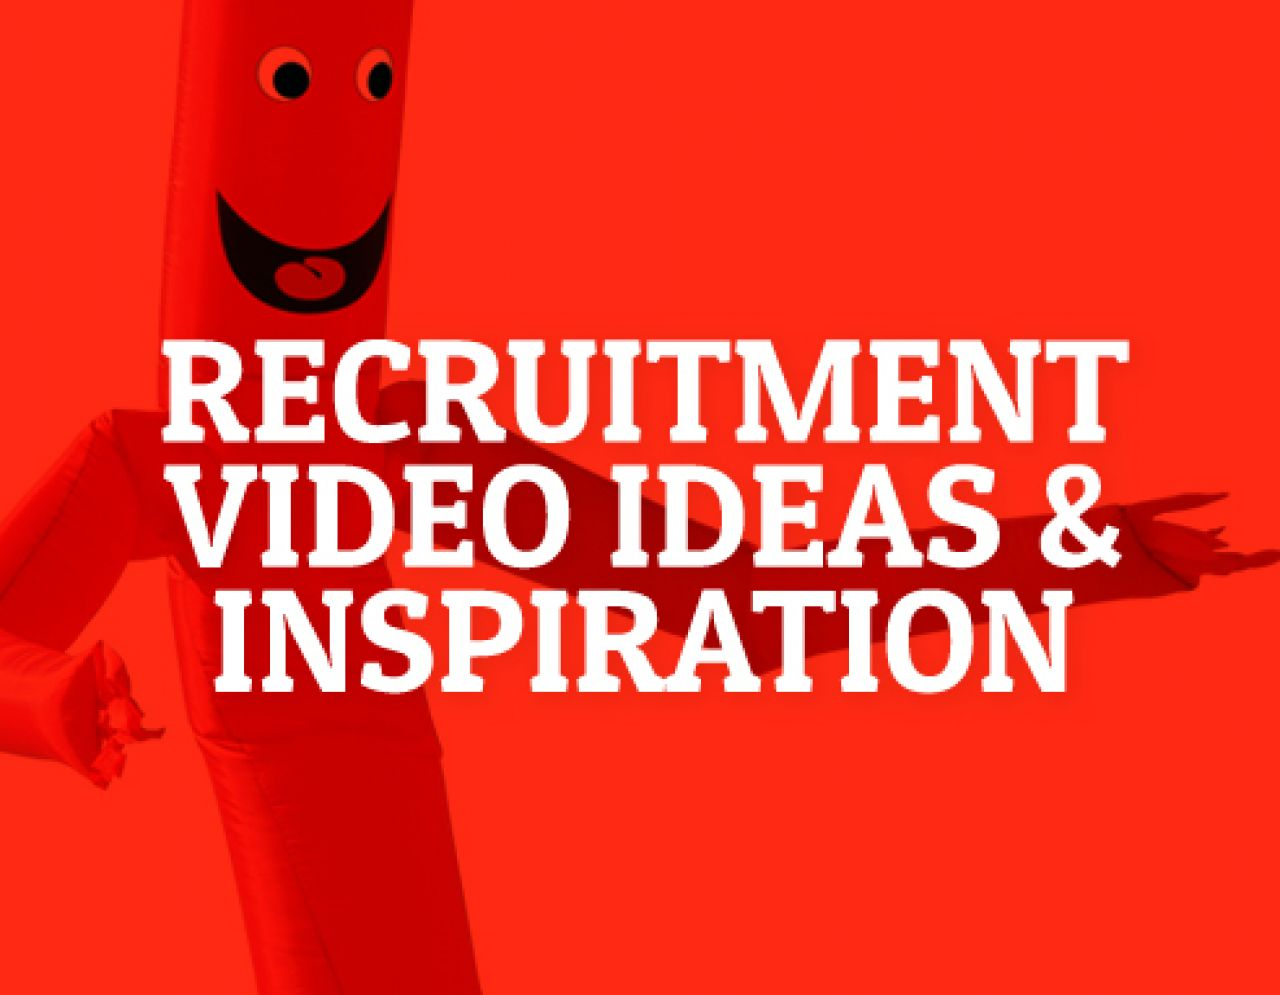 recruitment video ideas  u0026 inspiration